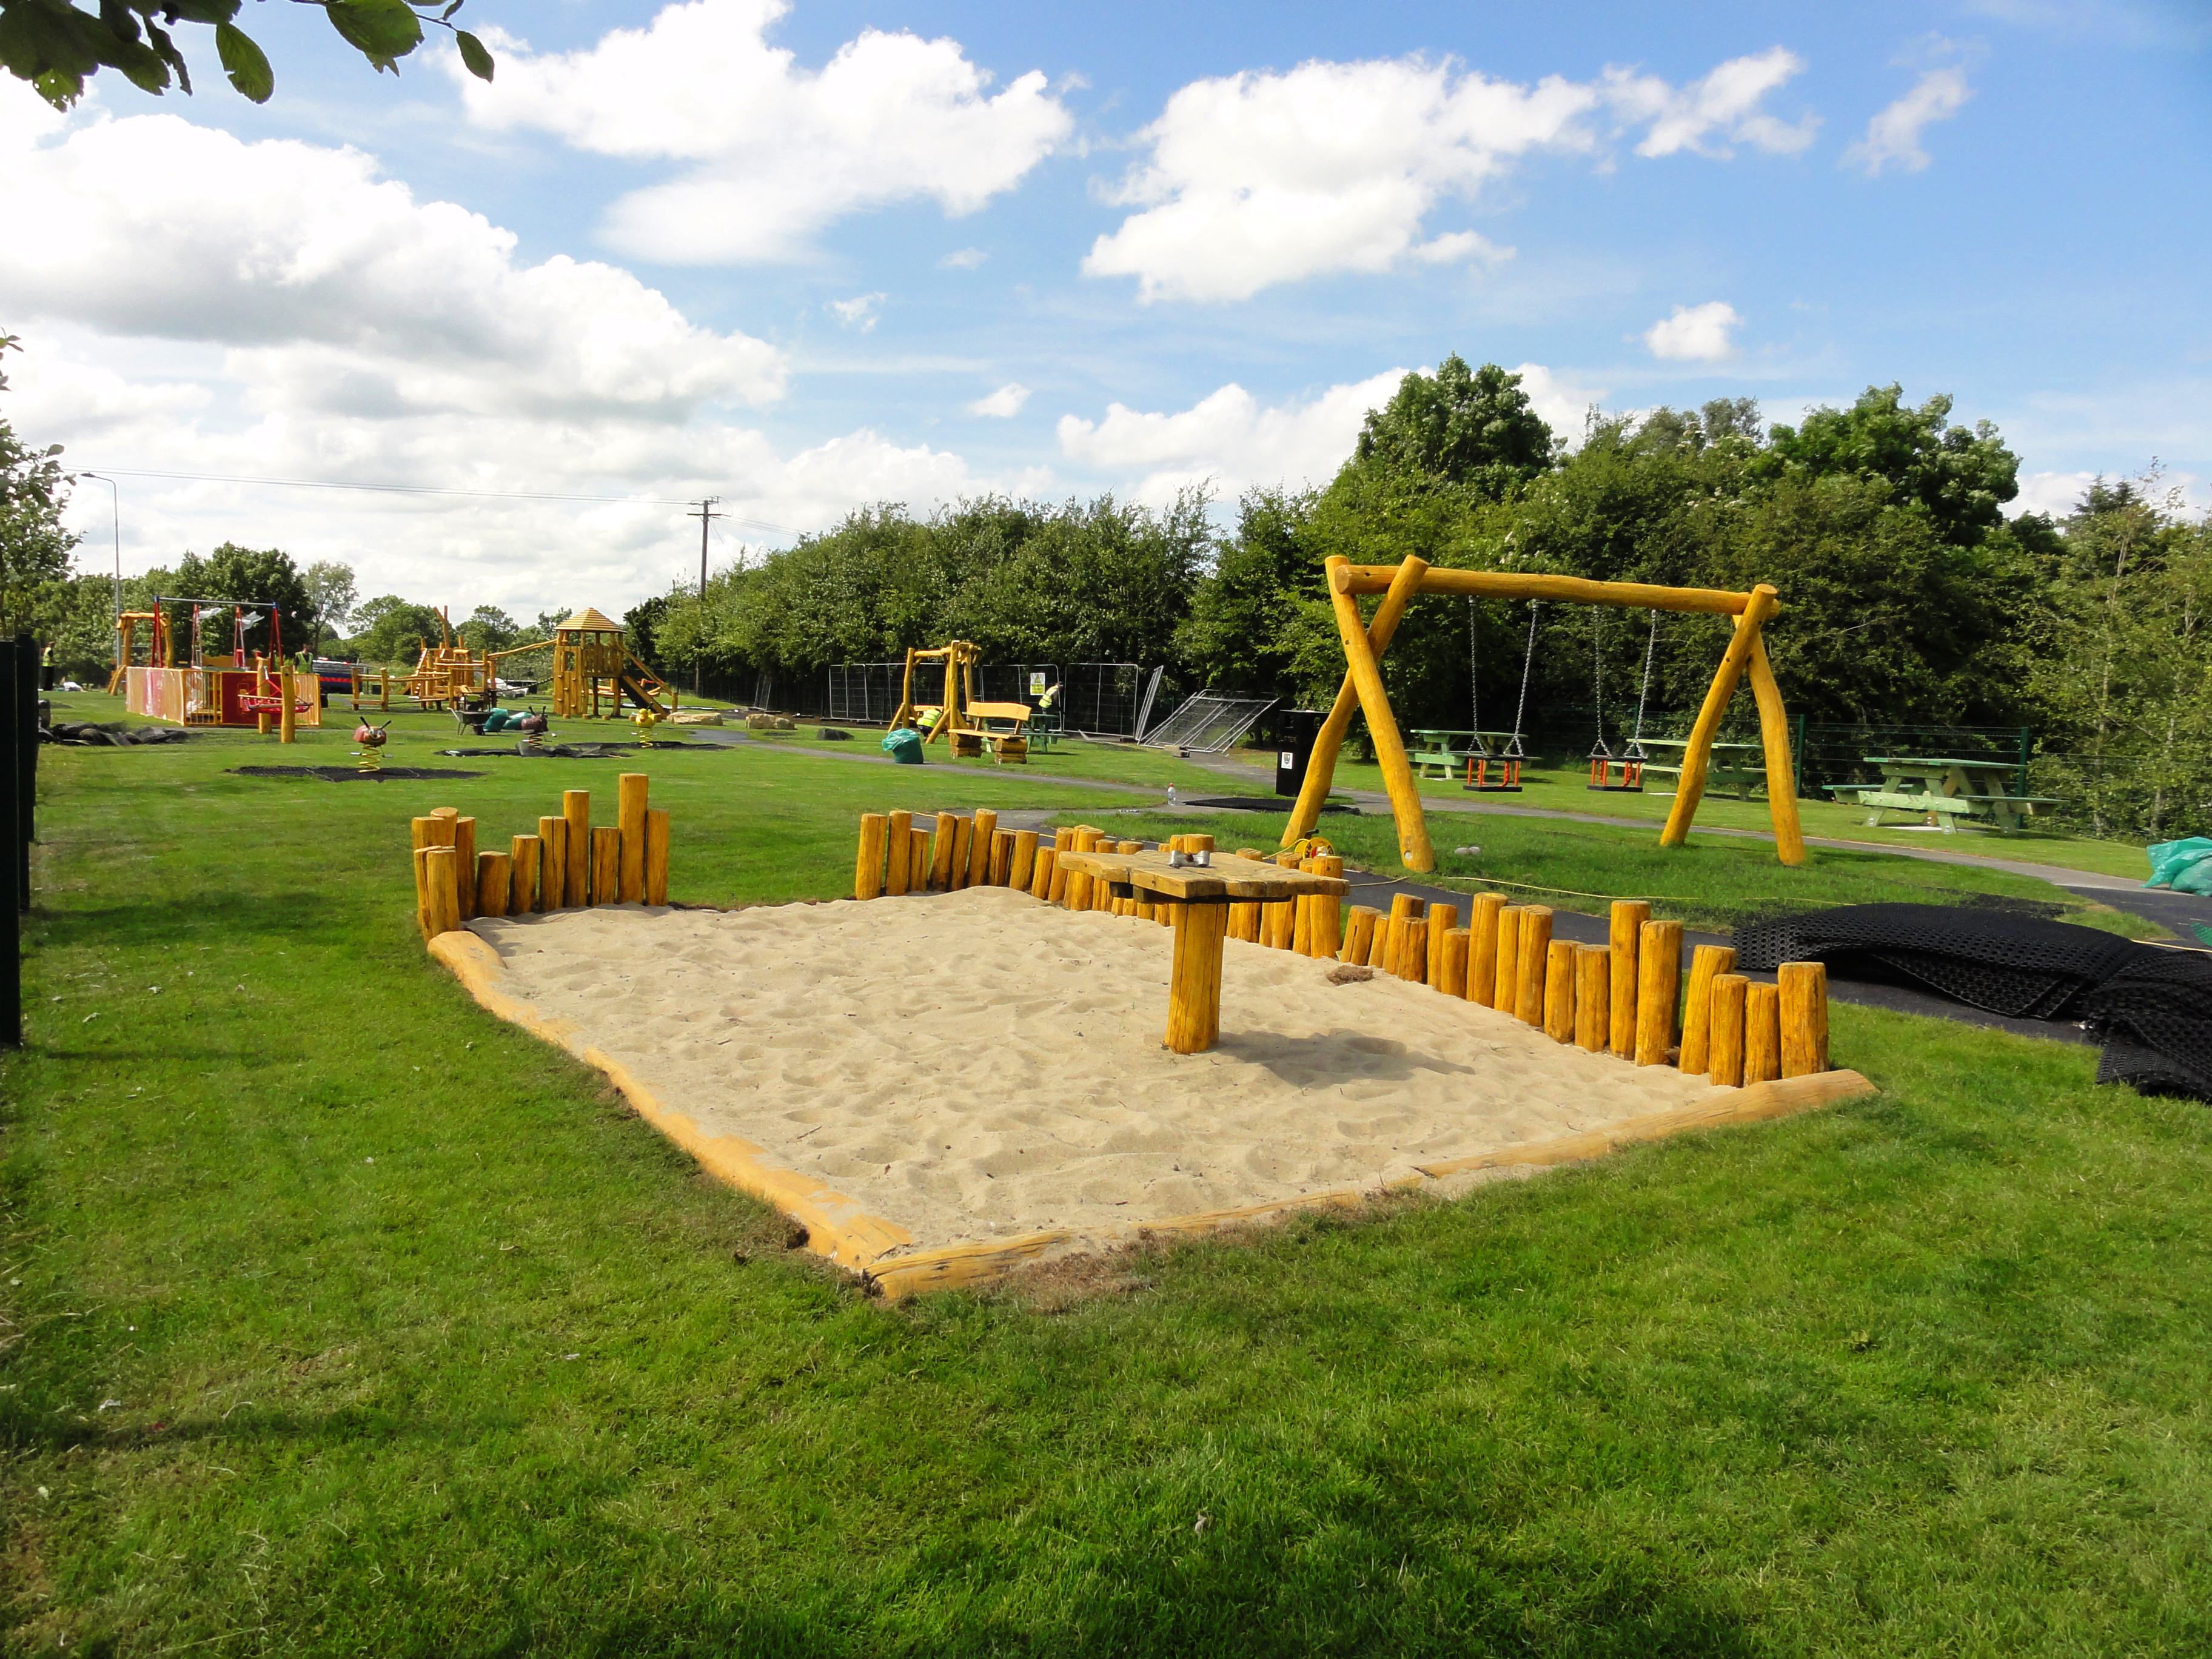 Sand play area in Trim, Co. Meath